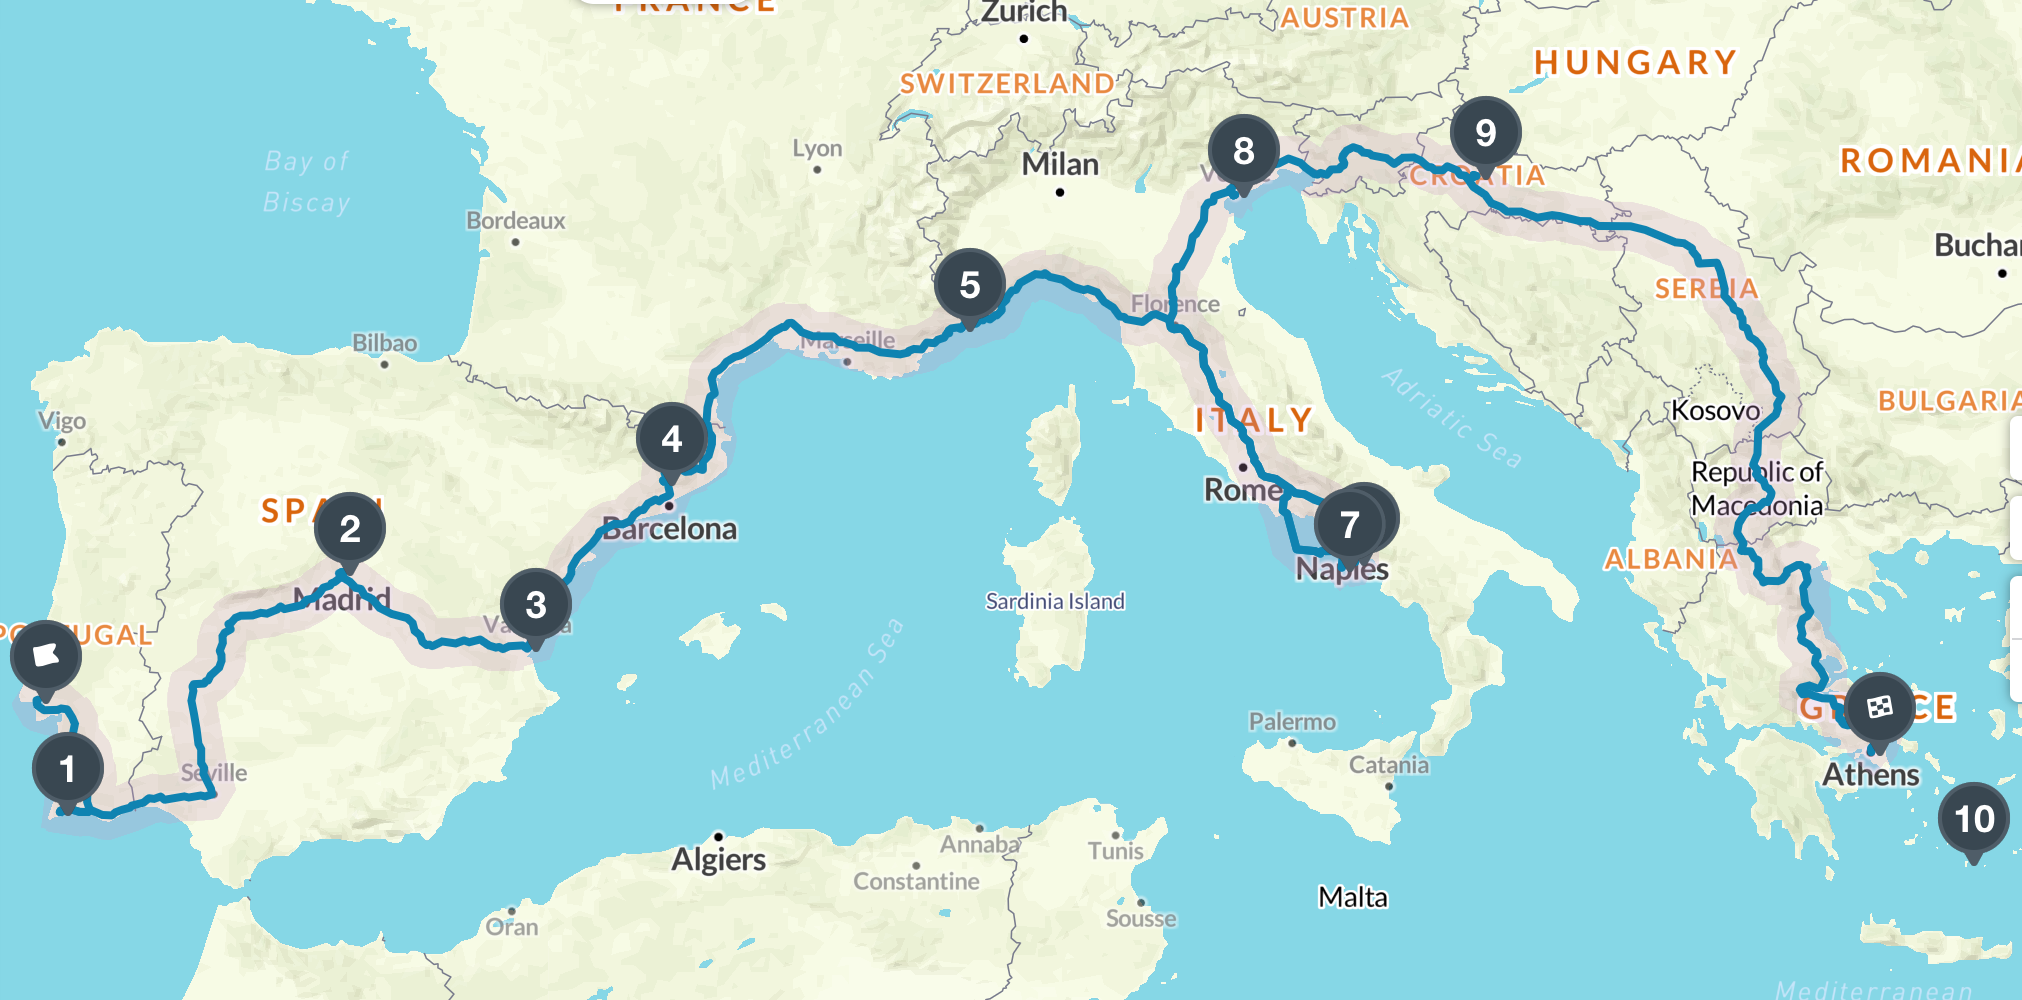 Map Of Spain Portugal And Italy.Future Trip Route Portugal Spain Monaco Italy Croatia Greece